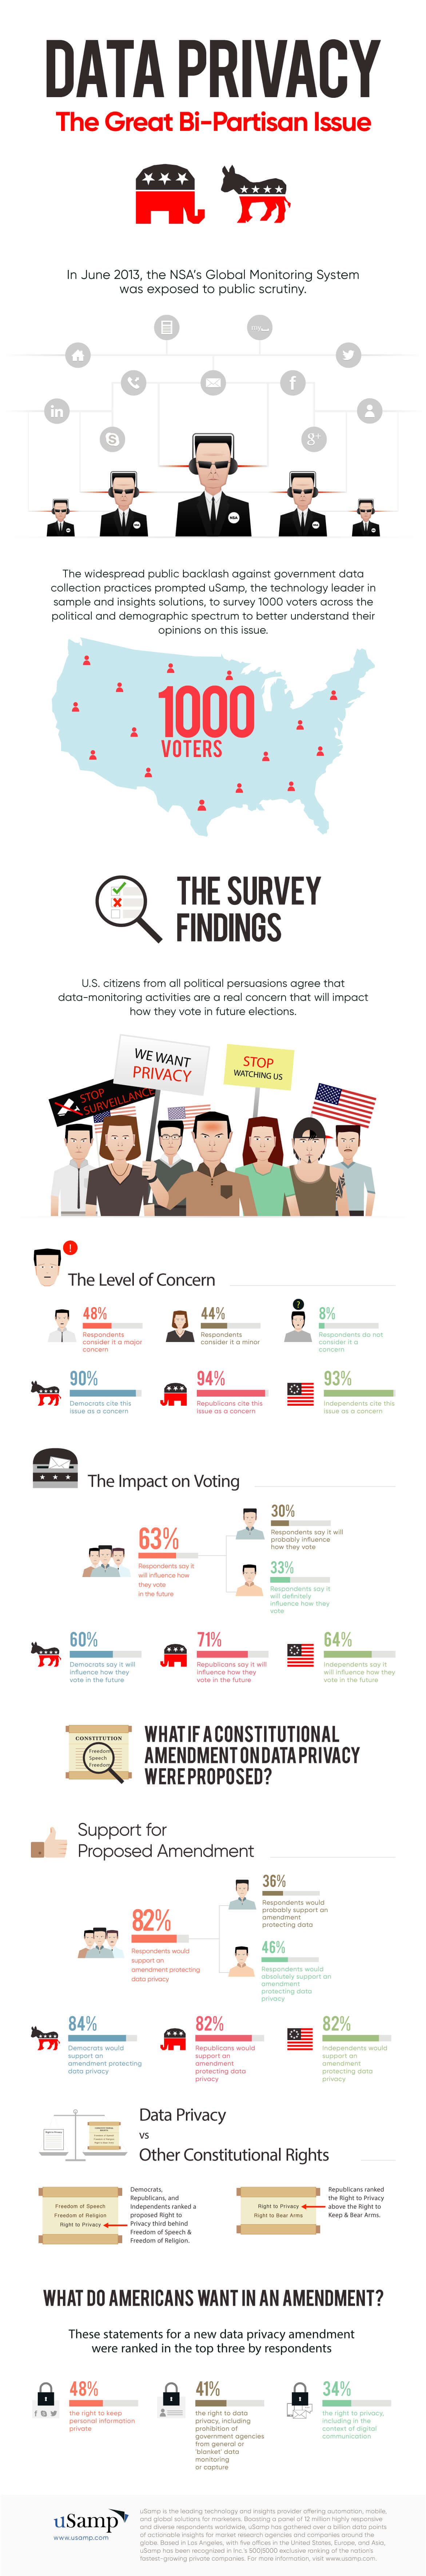 Data-Privacy-The-Great-Bi-Partisan-Issue-Infographic copy